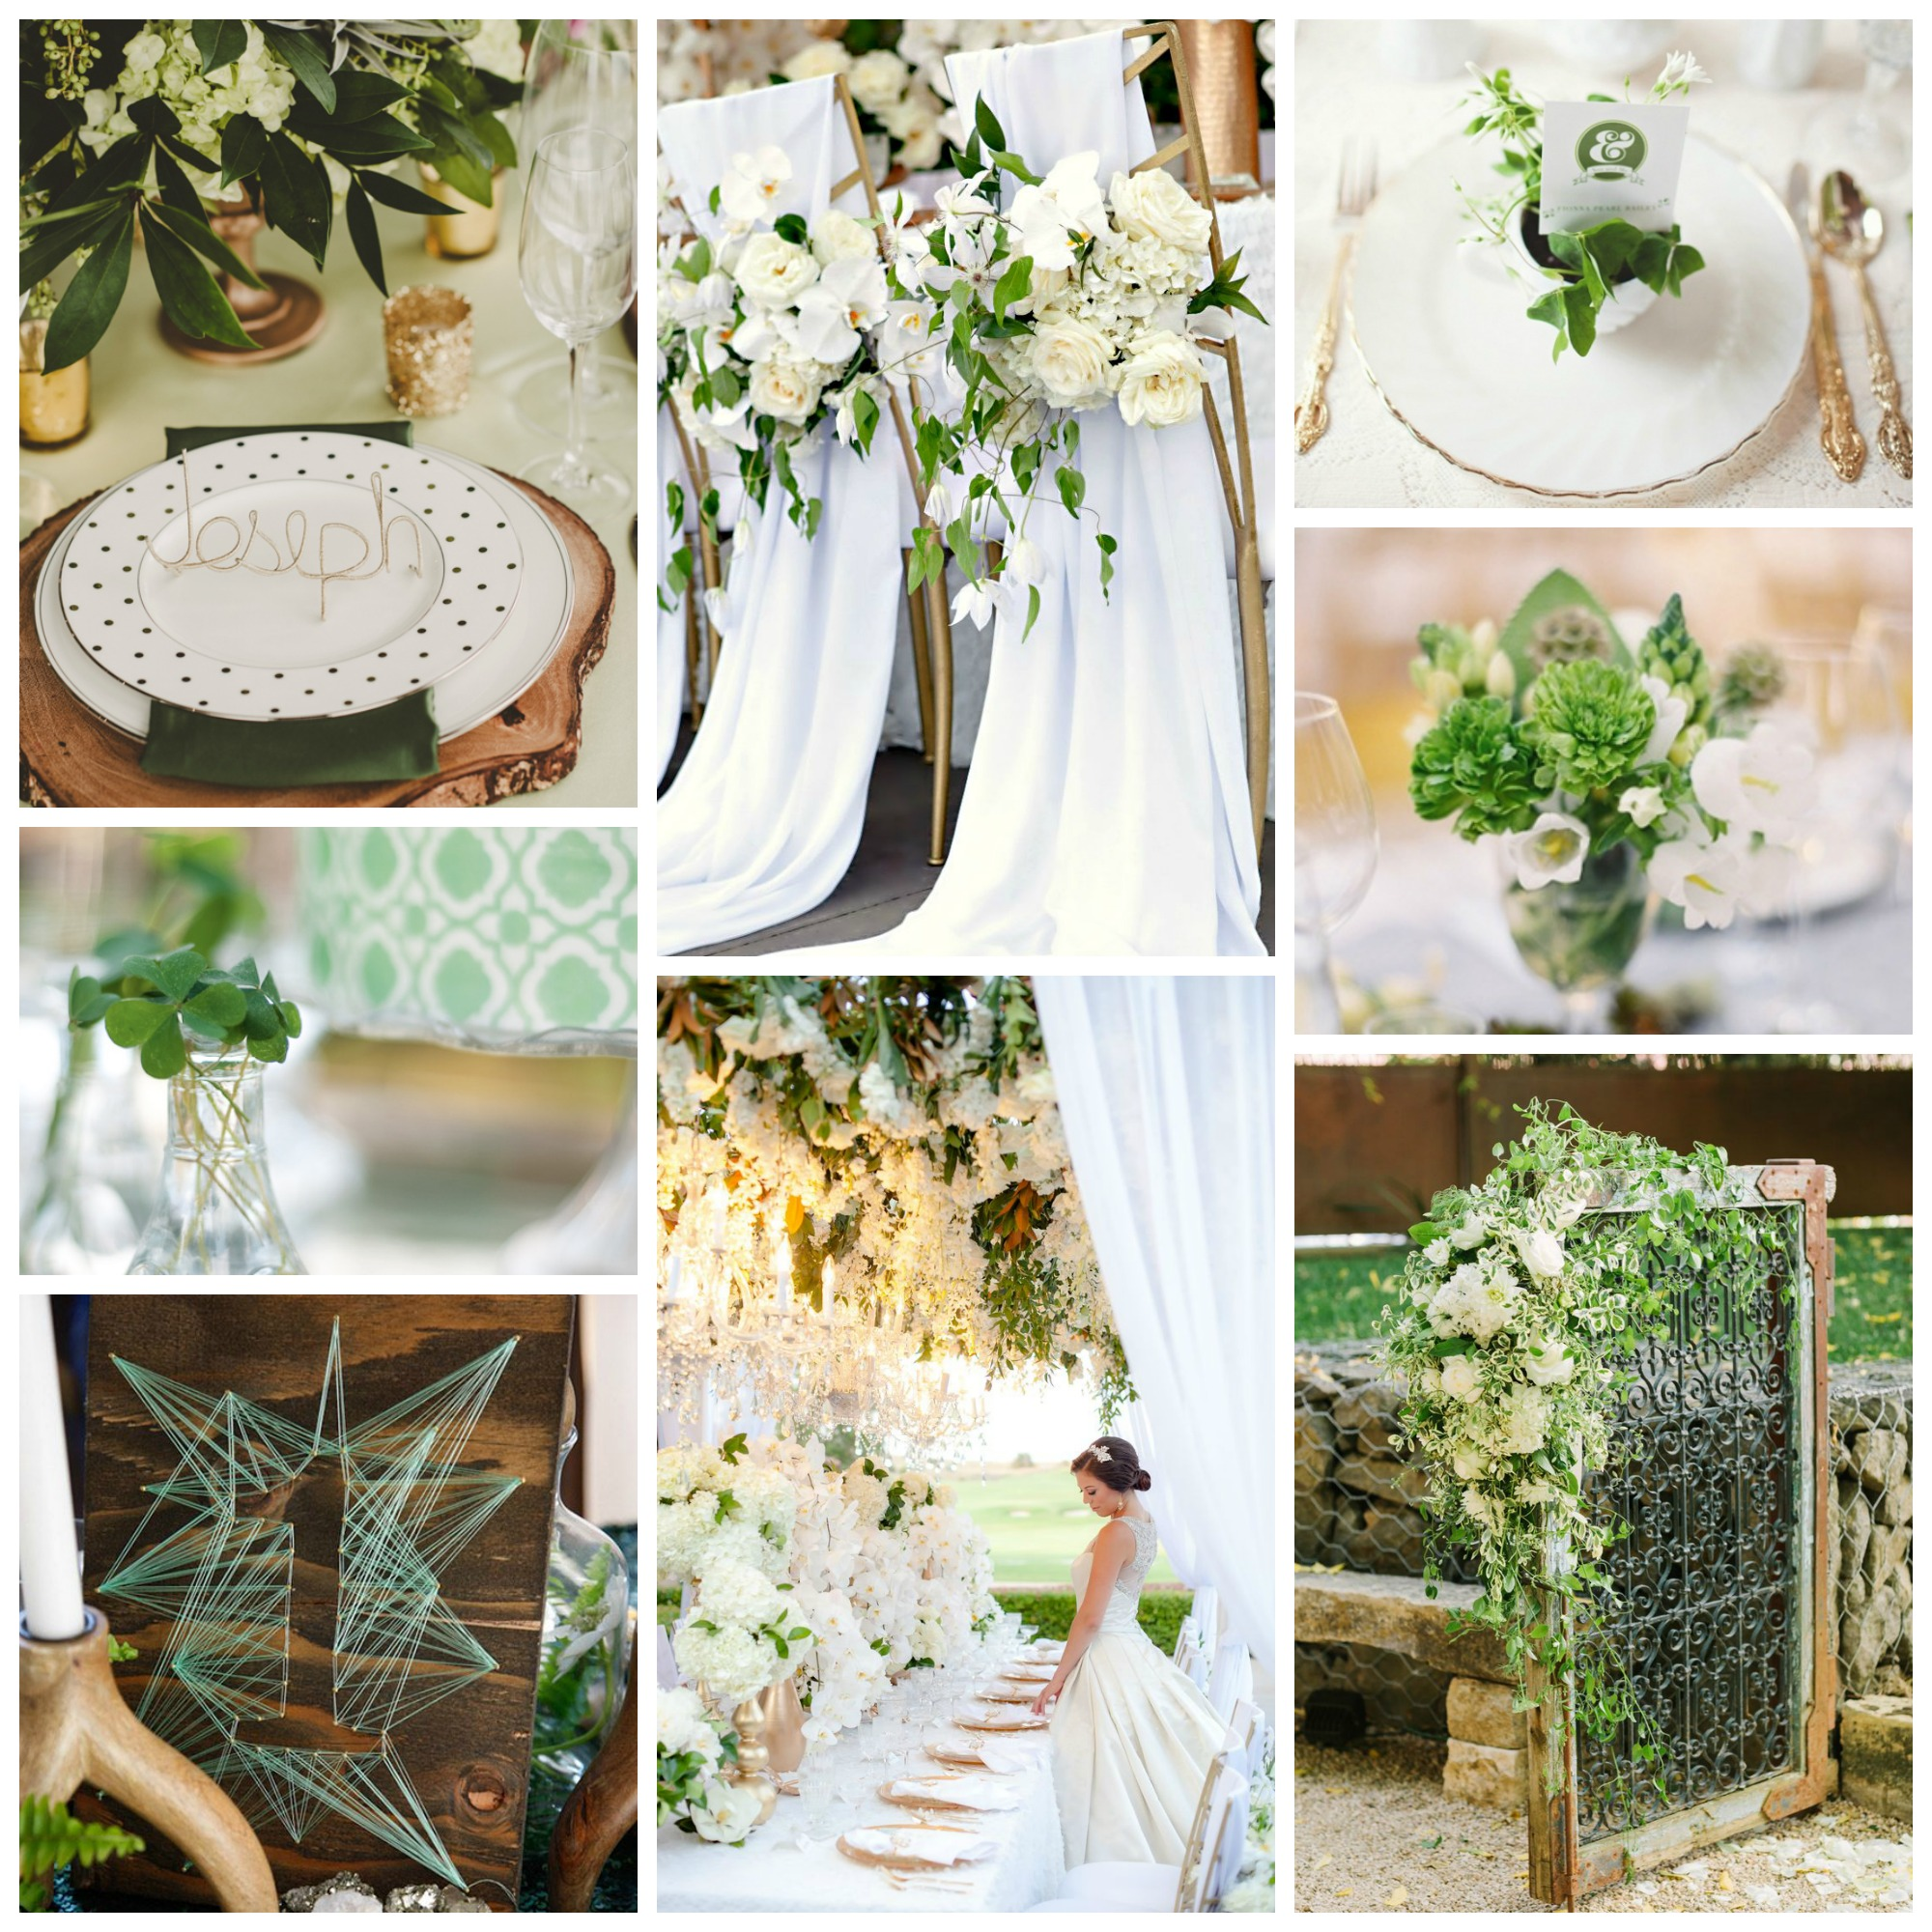 Wedding Ideas And Inspirations: Green + White Wedding Inspiration